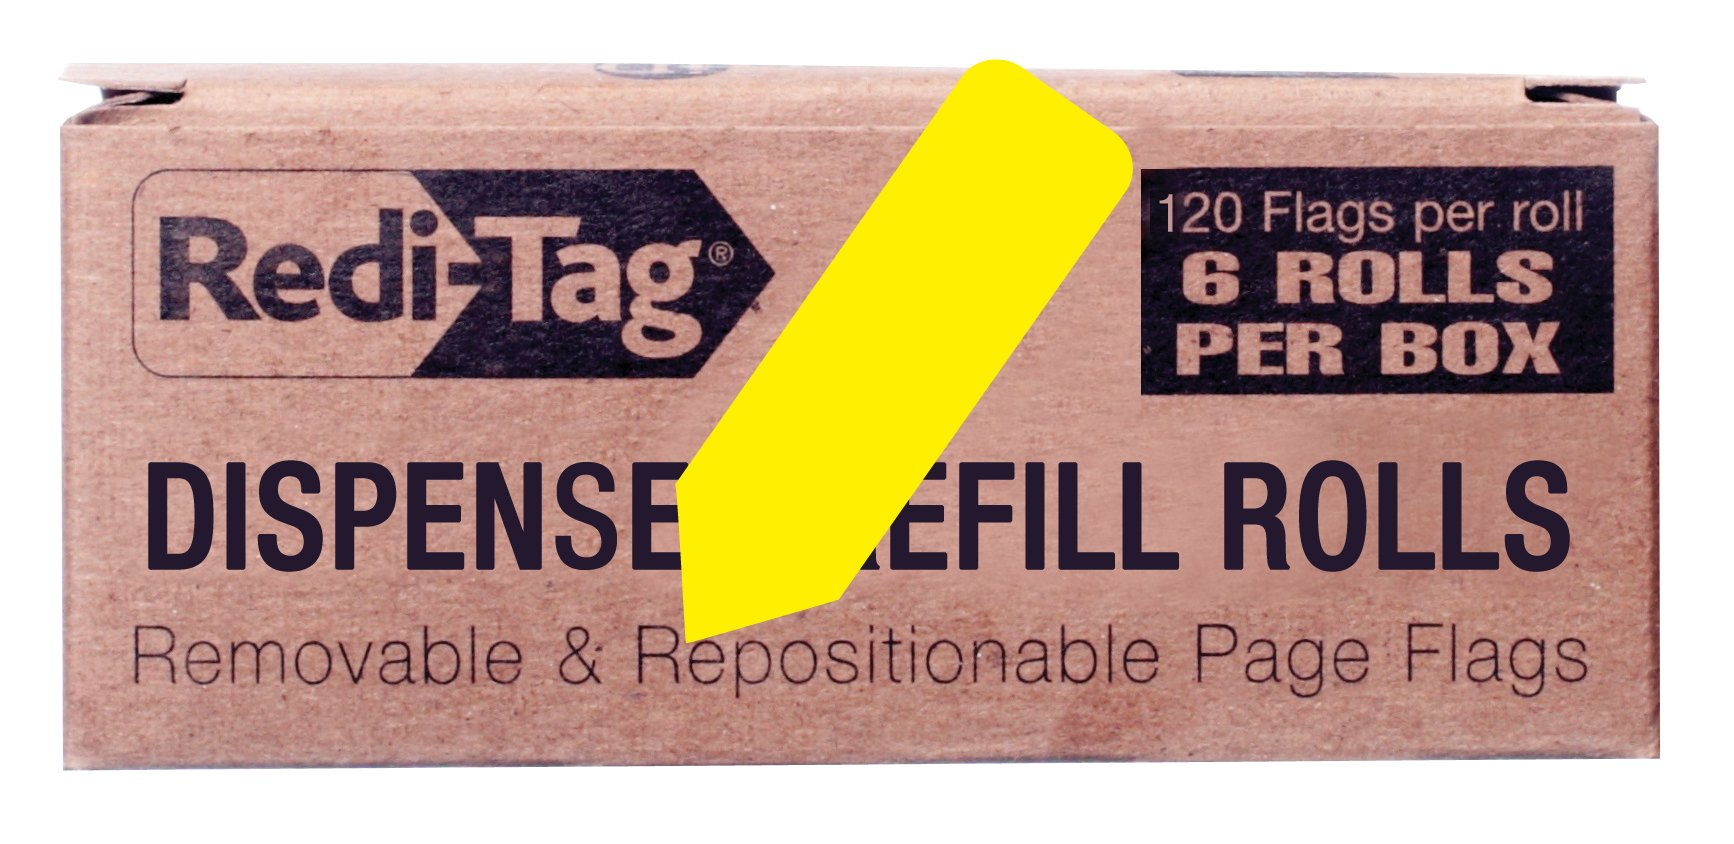 Redi-Tag Solid Arrow Dispenser Flags, 6 Roll Refill, 120 Flags per Roll, 1-7/8 x 9/16 Inches, Yellow (91061) by Redi-Tag